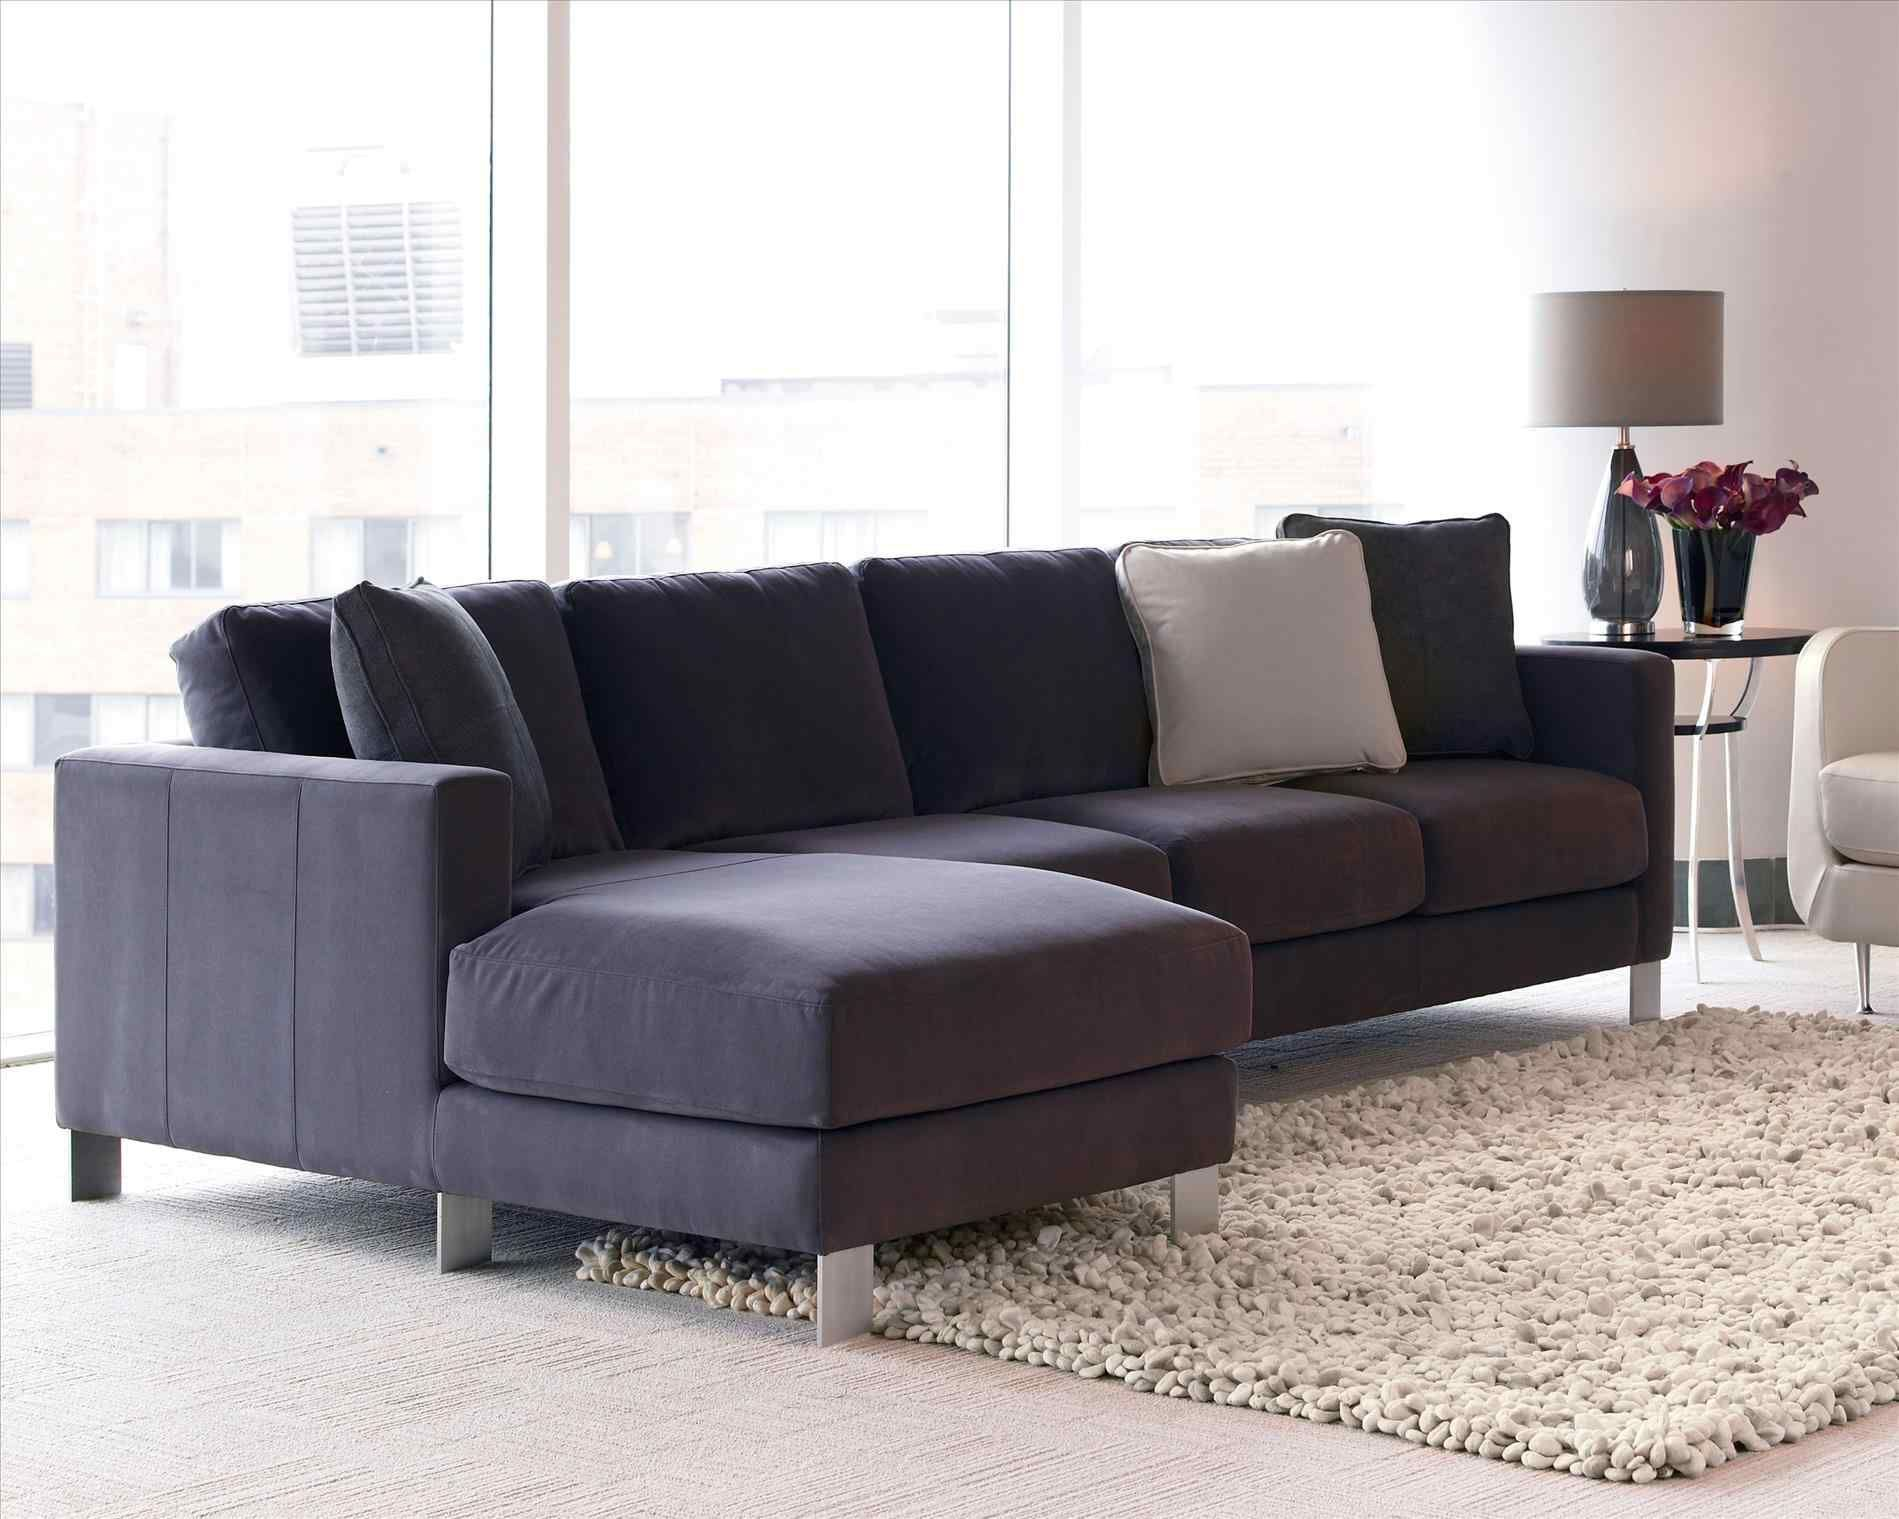 Beau Sleeper Sofas Without Bars City Steel Piece Sectional W U Right Facing  Chaise Sofa Beds Youull Love Sofa Sleeper Sofas Without Bars